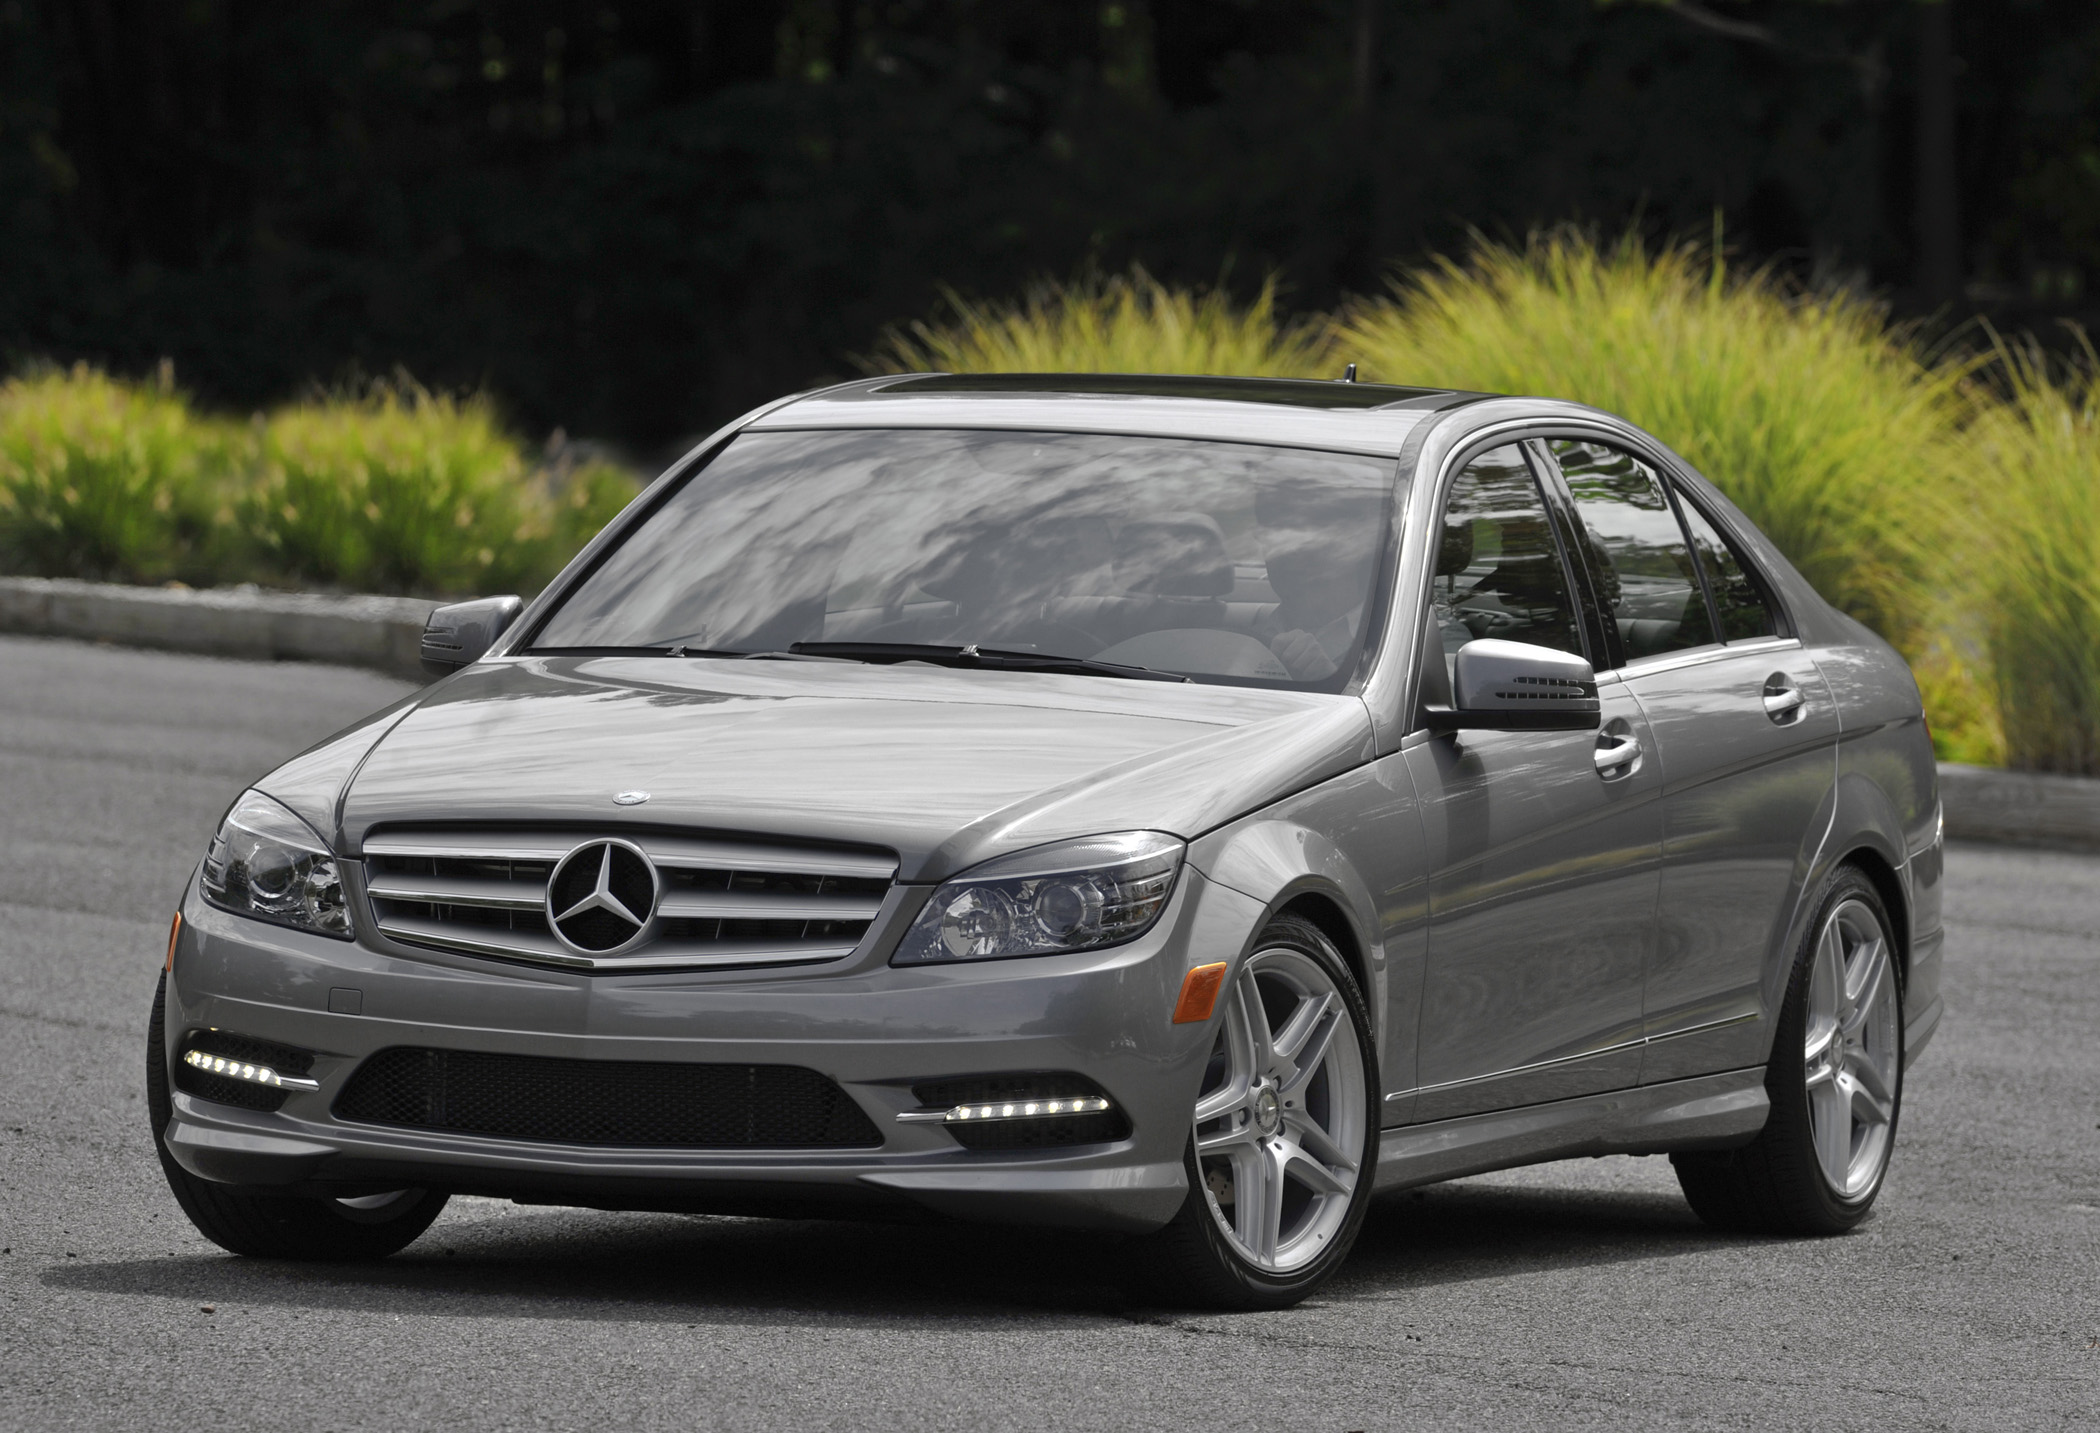 2011 mercedes c-class sedan 2011 mercedes-benz c300 4matic sport